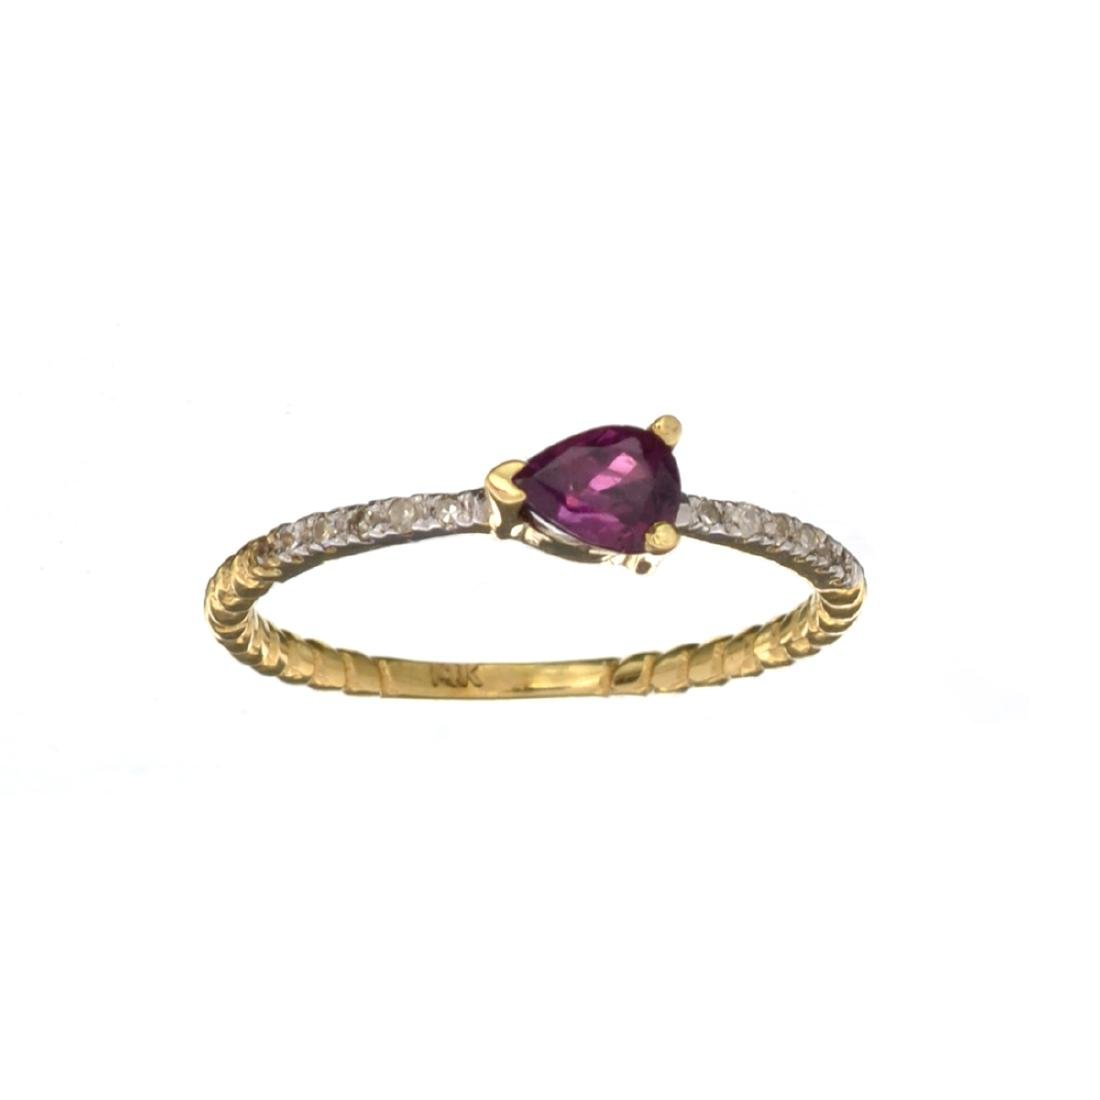 APP: 0.8k Fine Jewelry 14 KT Gold, 0.40CT Ruby And